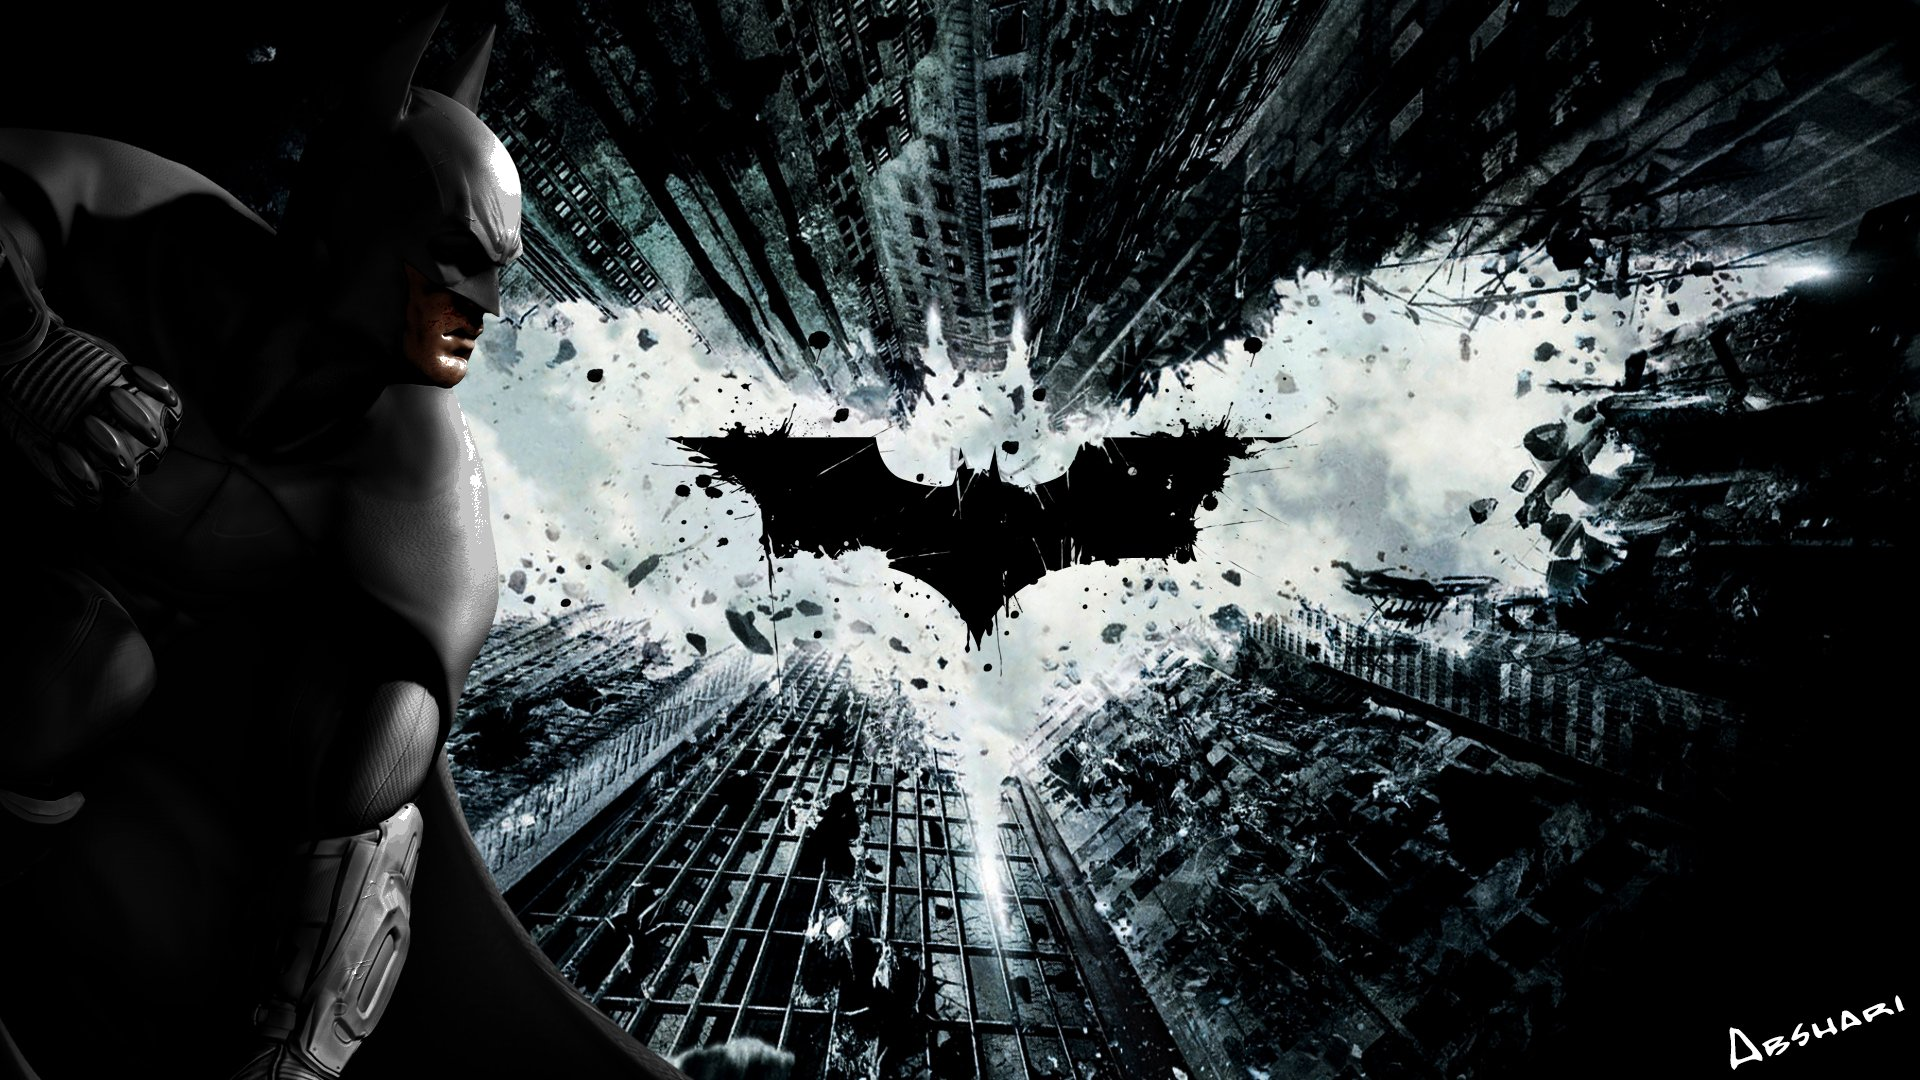 dark knight rises wallpaper 1920x1080 wallpapersafari